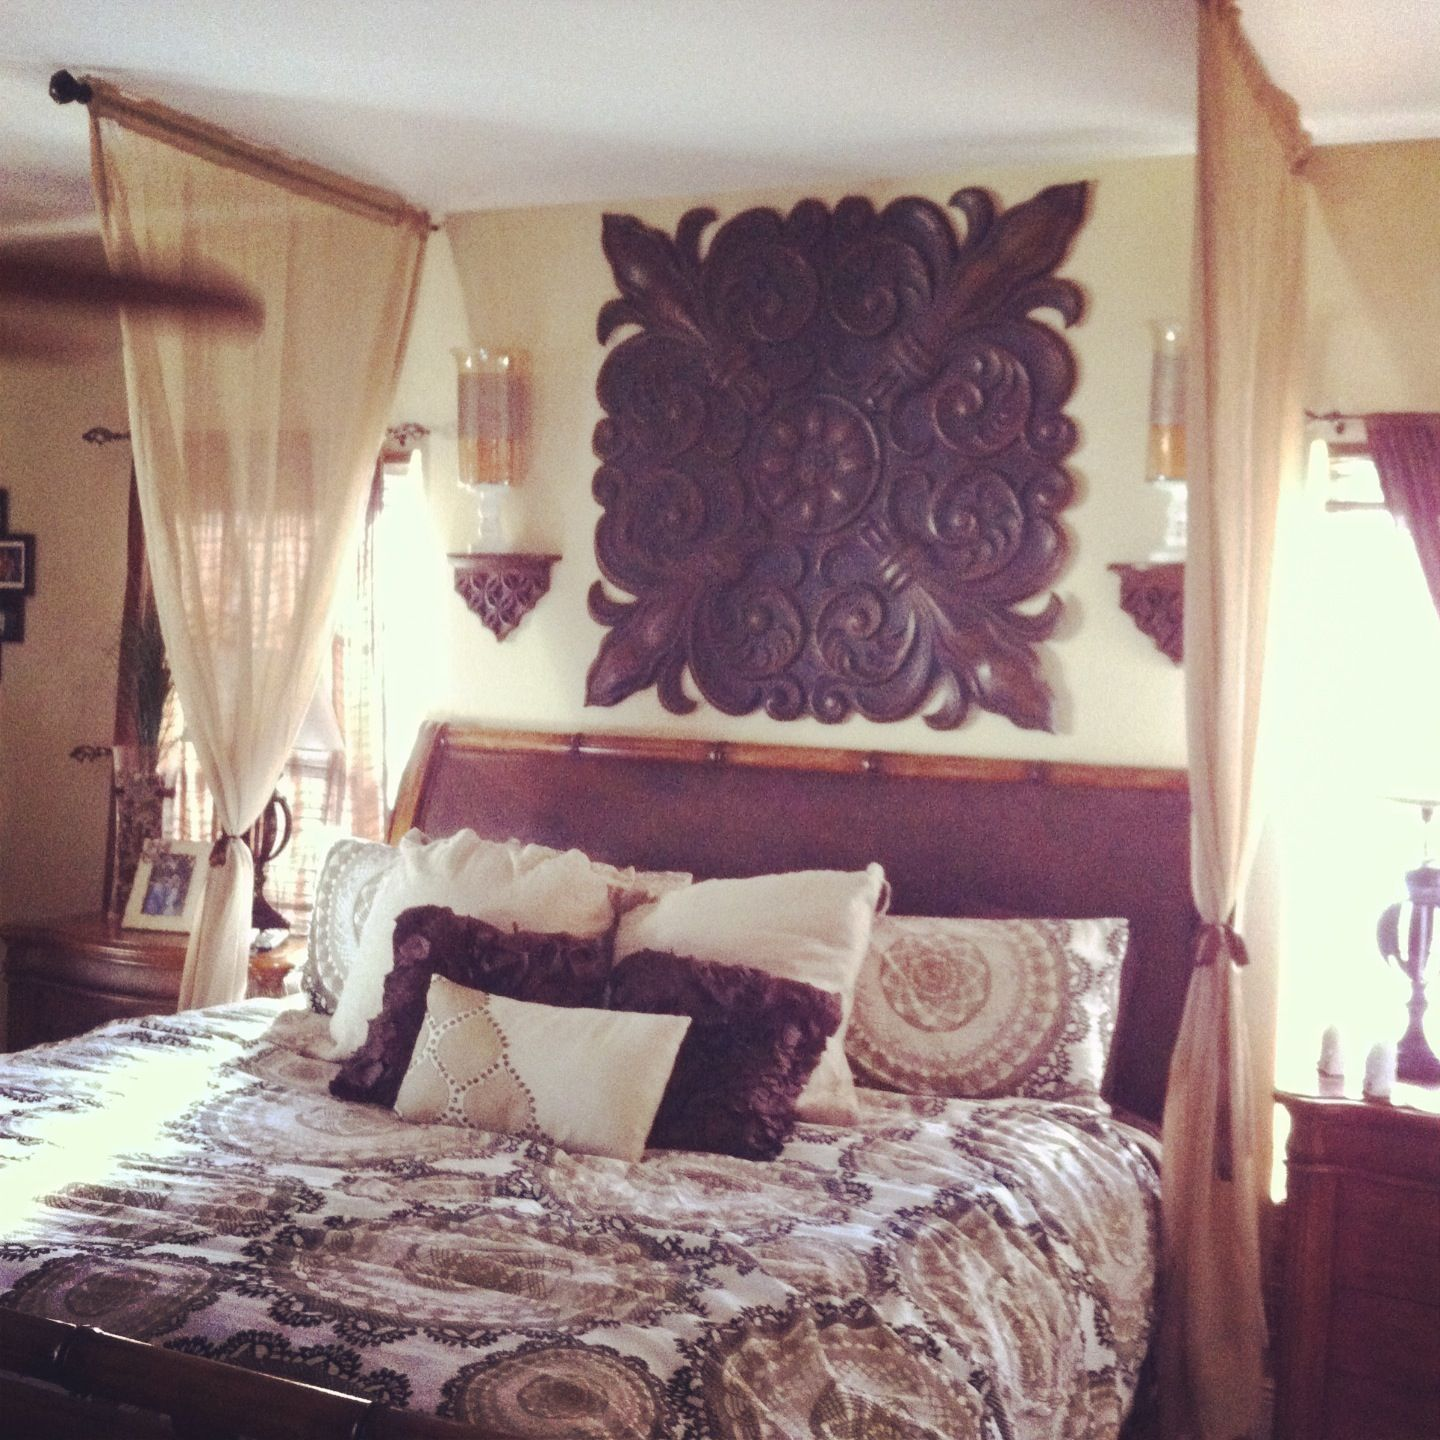 Curtain Rods & Window Drapes Hung Over Bed...romantic